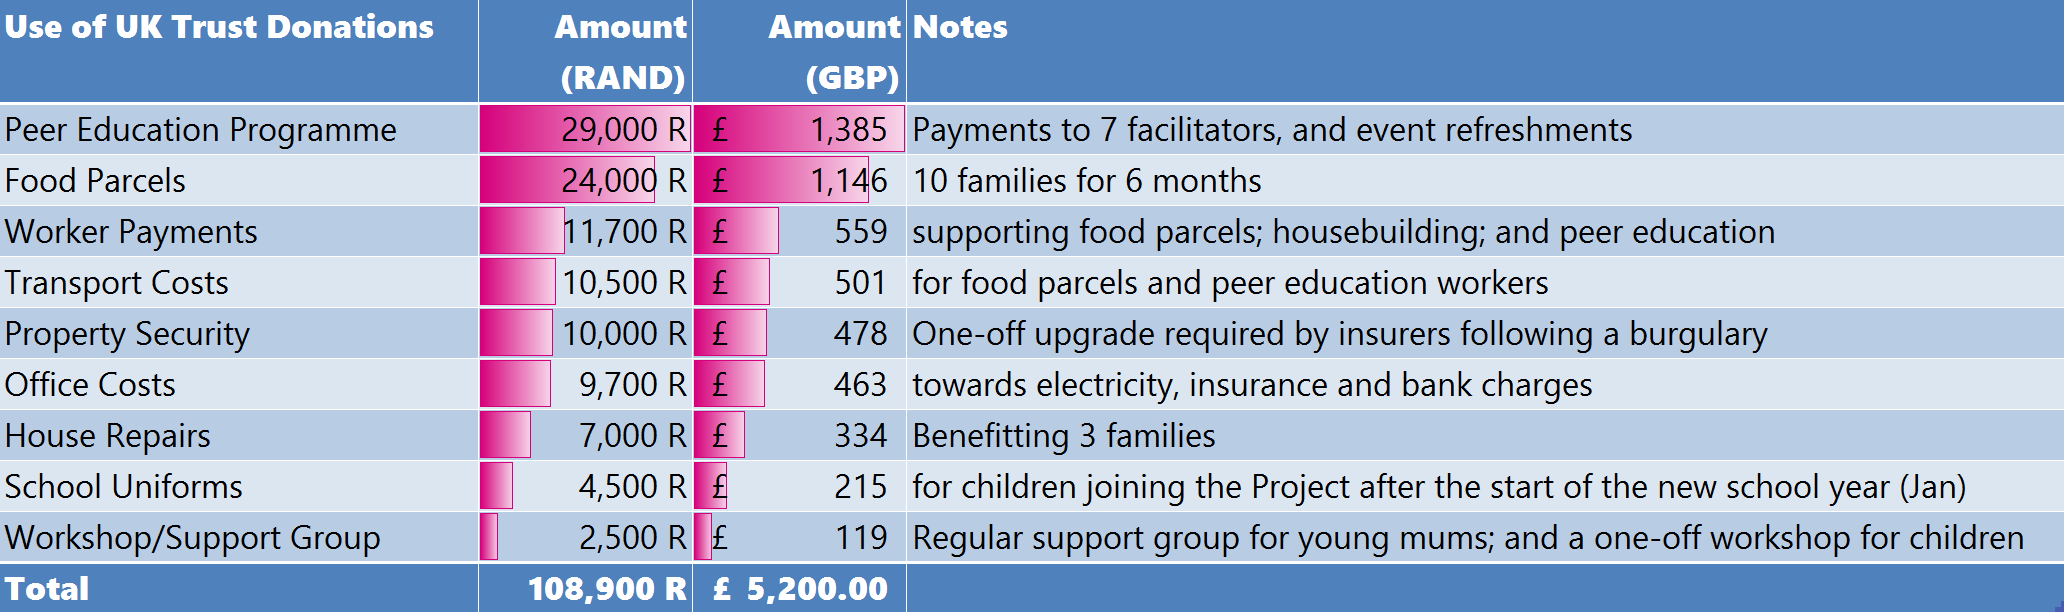 2015-16 donation spend